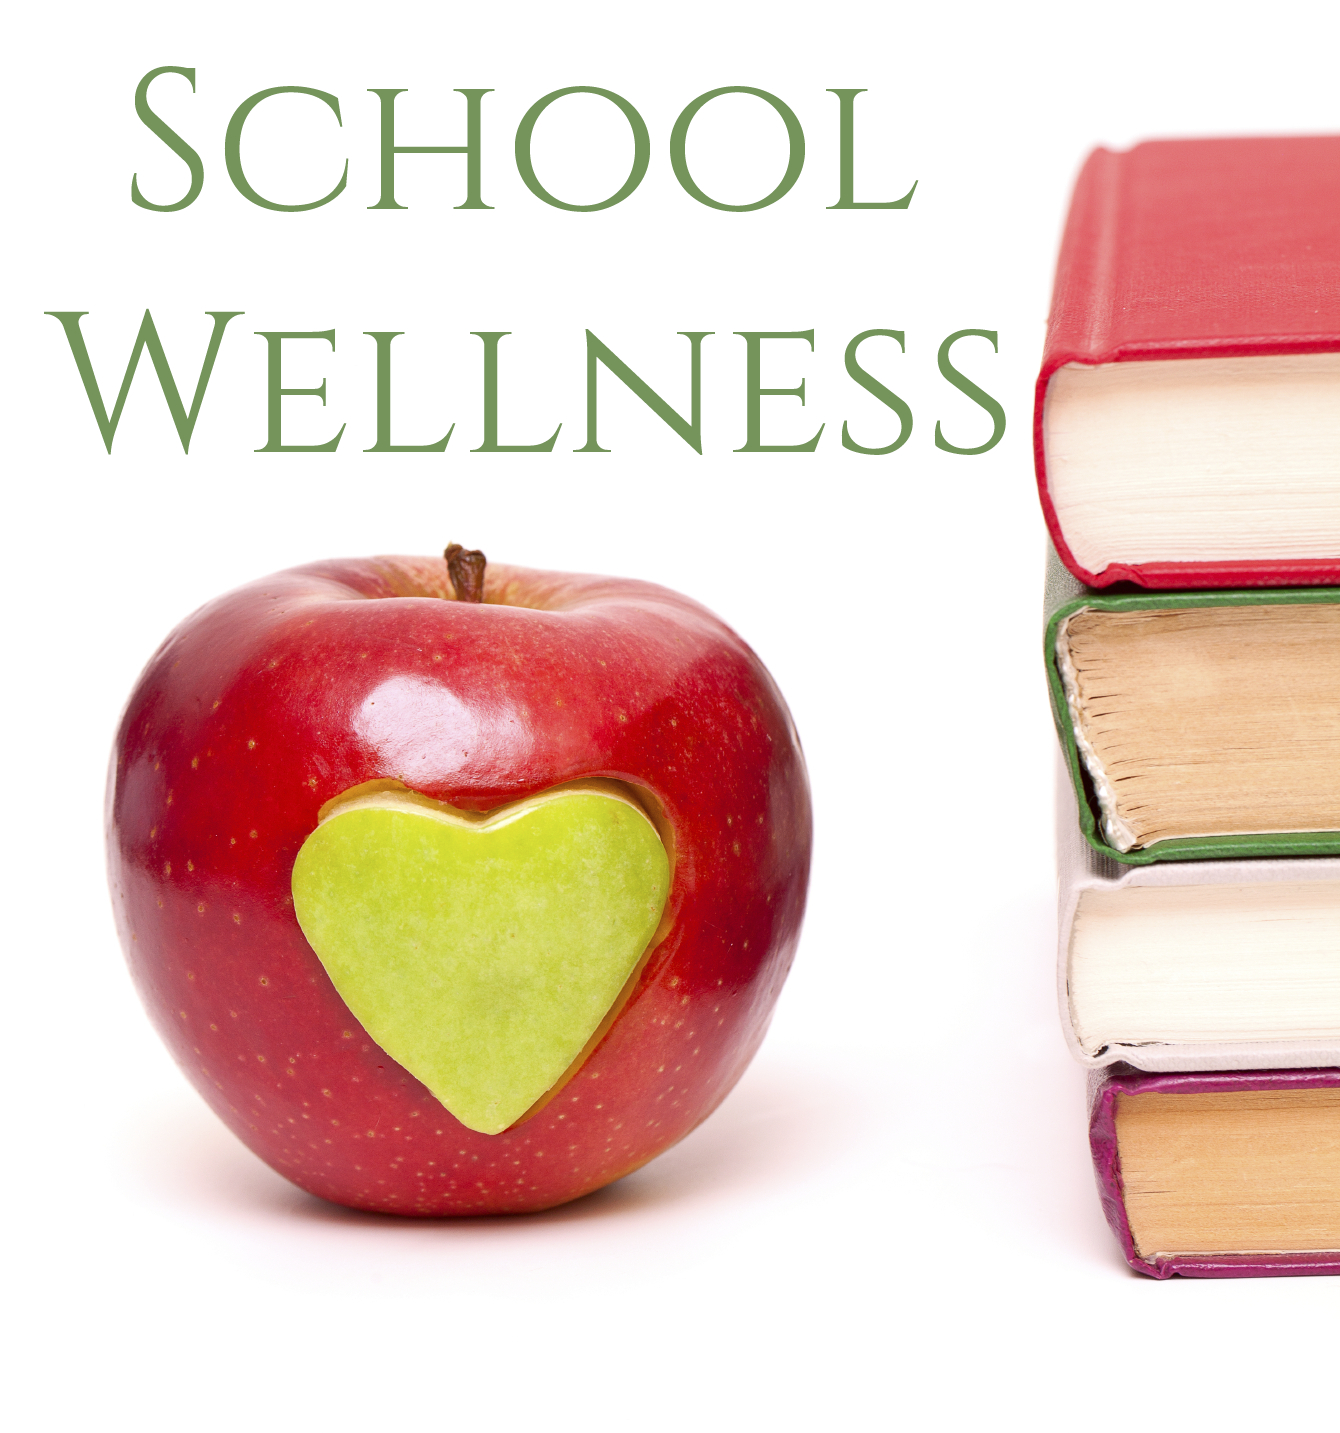 School Wellness with logo of a red apple with books